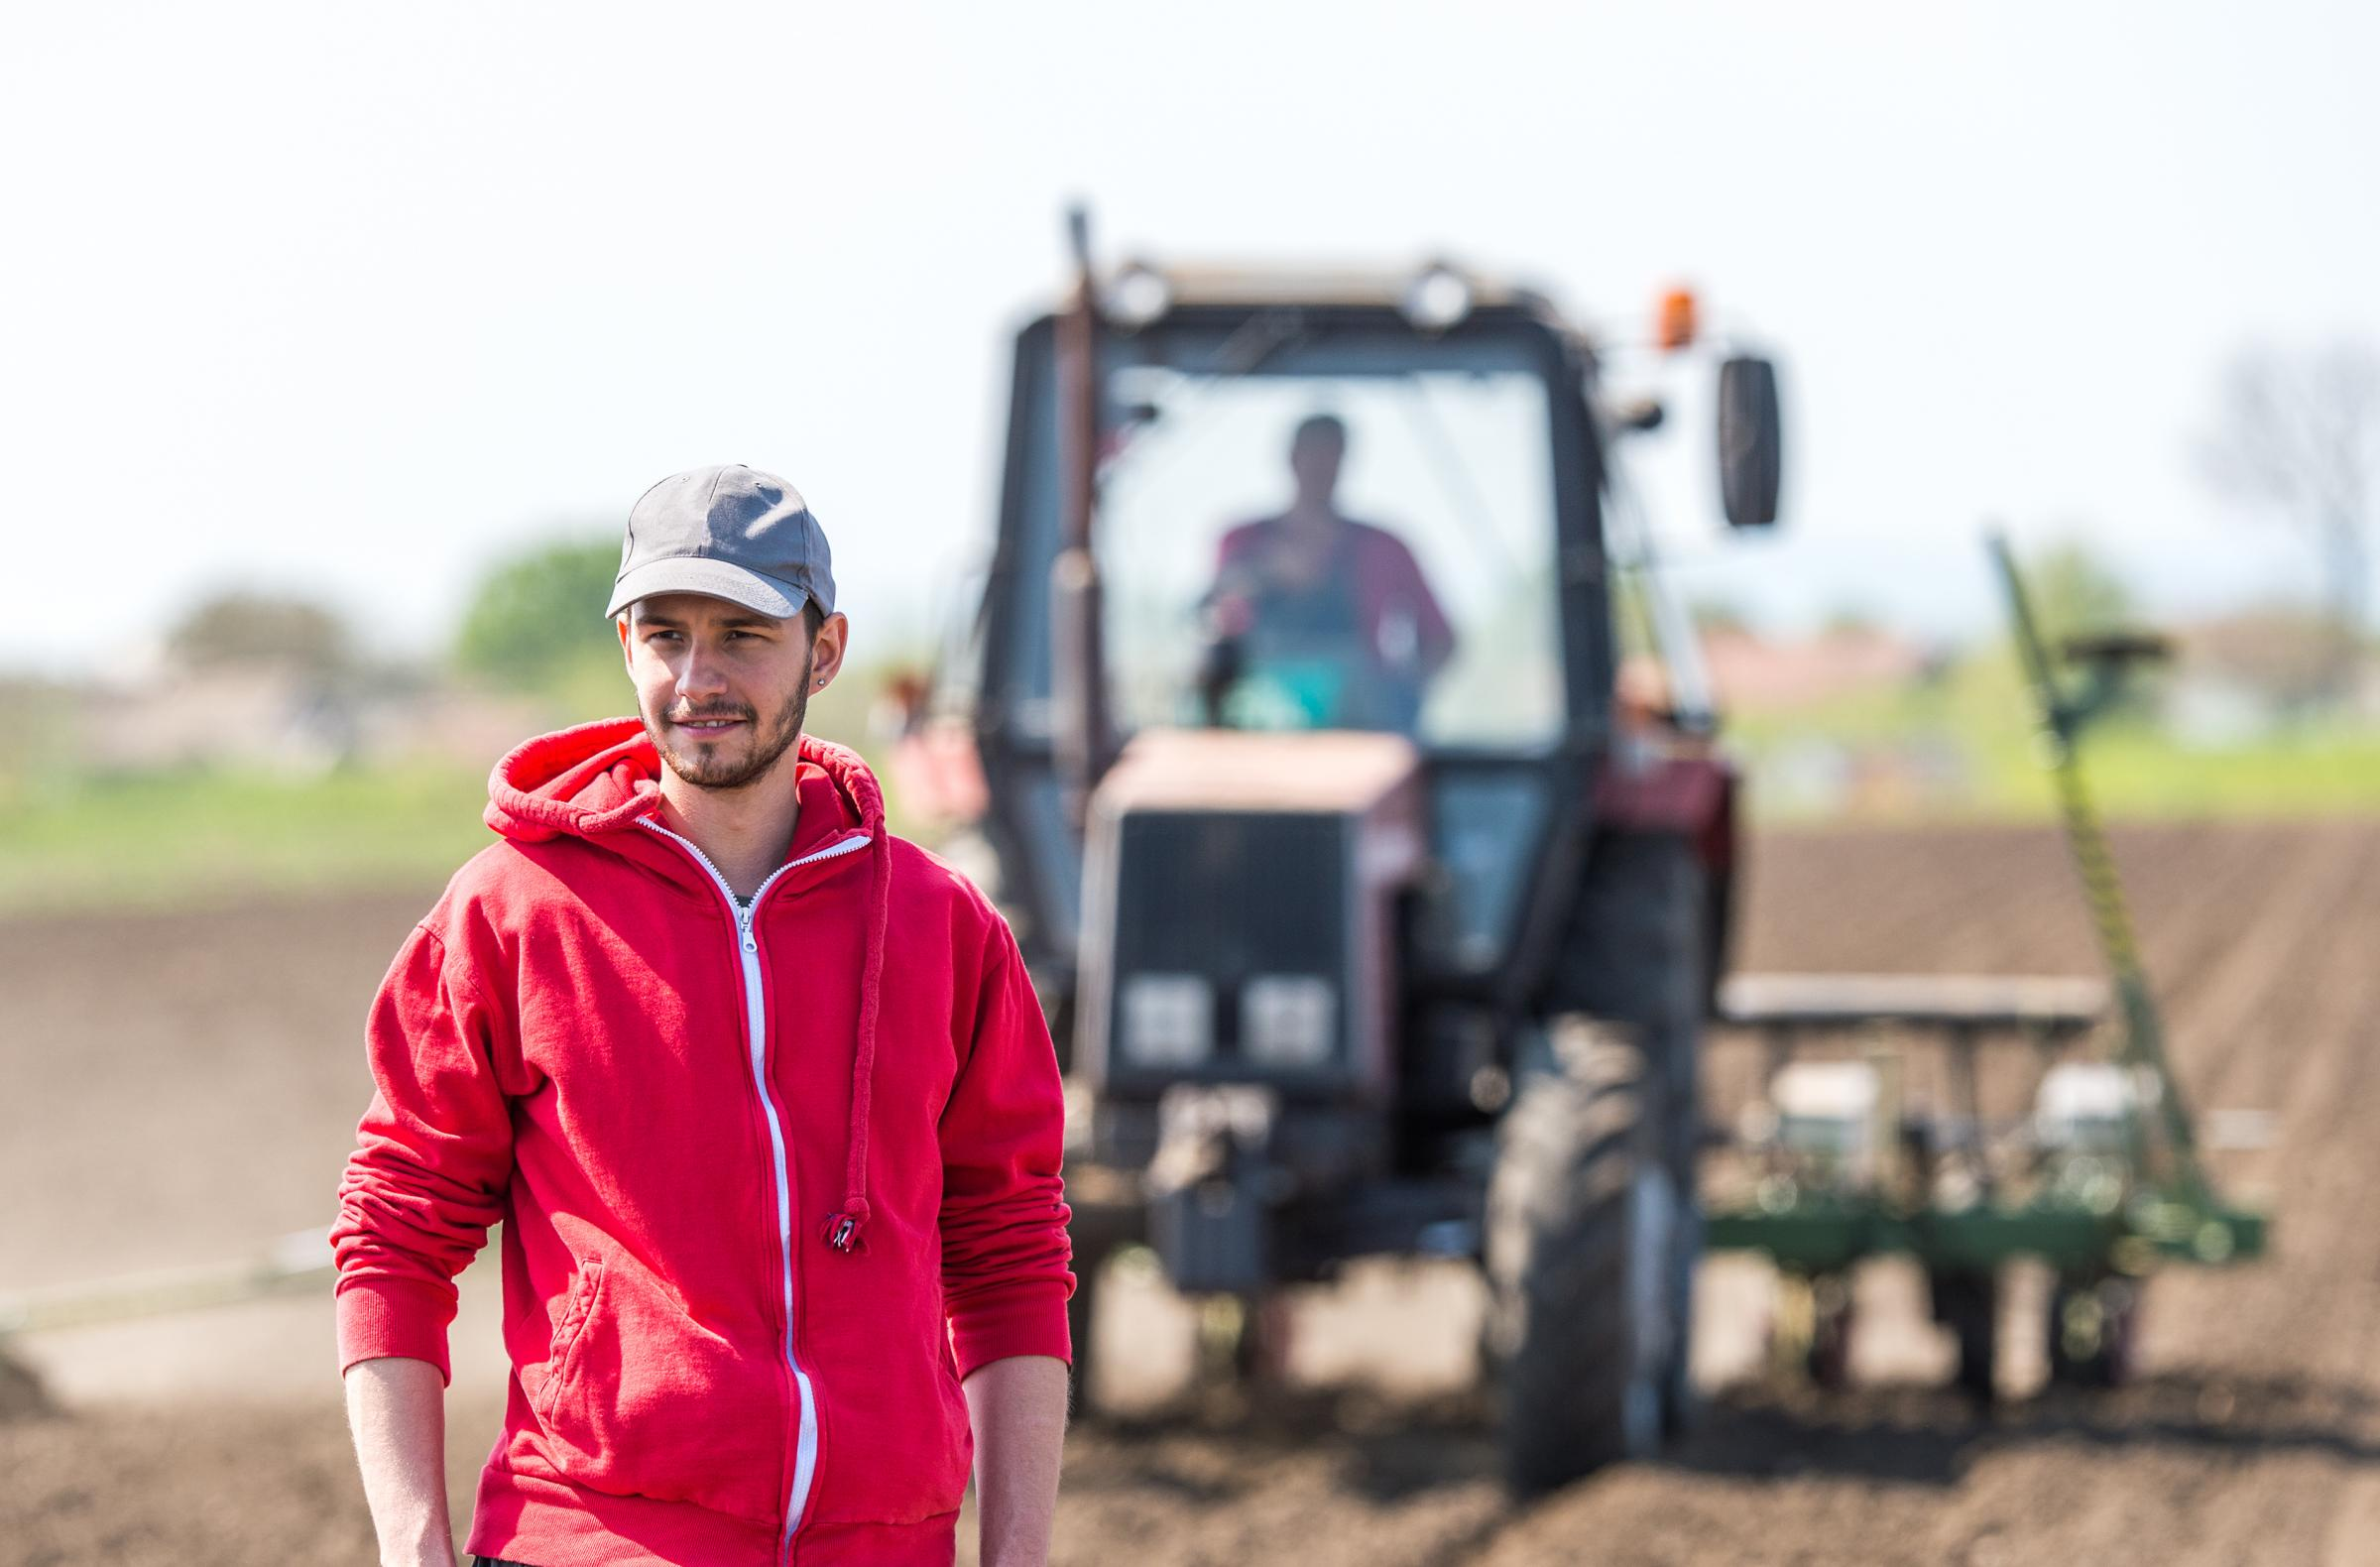 Bursaries available for agricultural students at Hartpury, Glos.